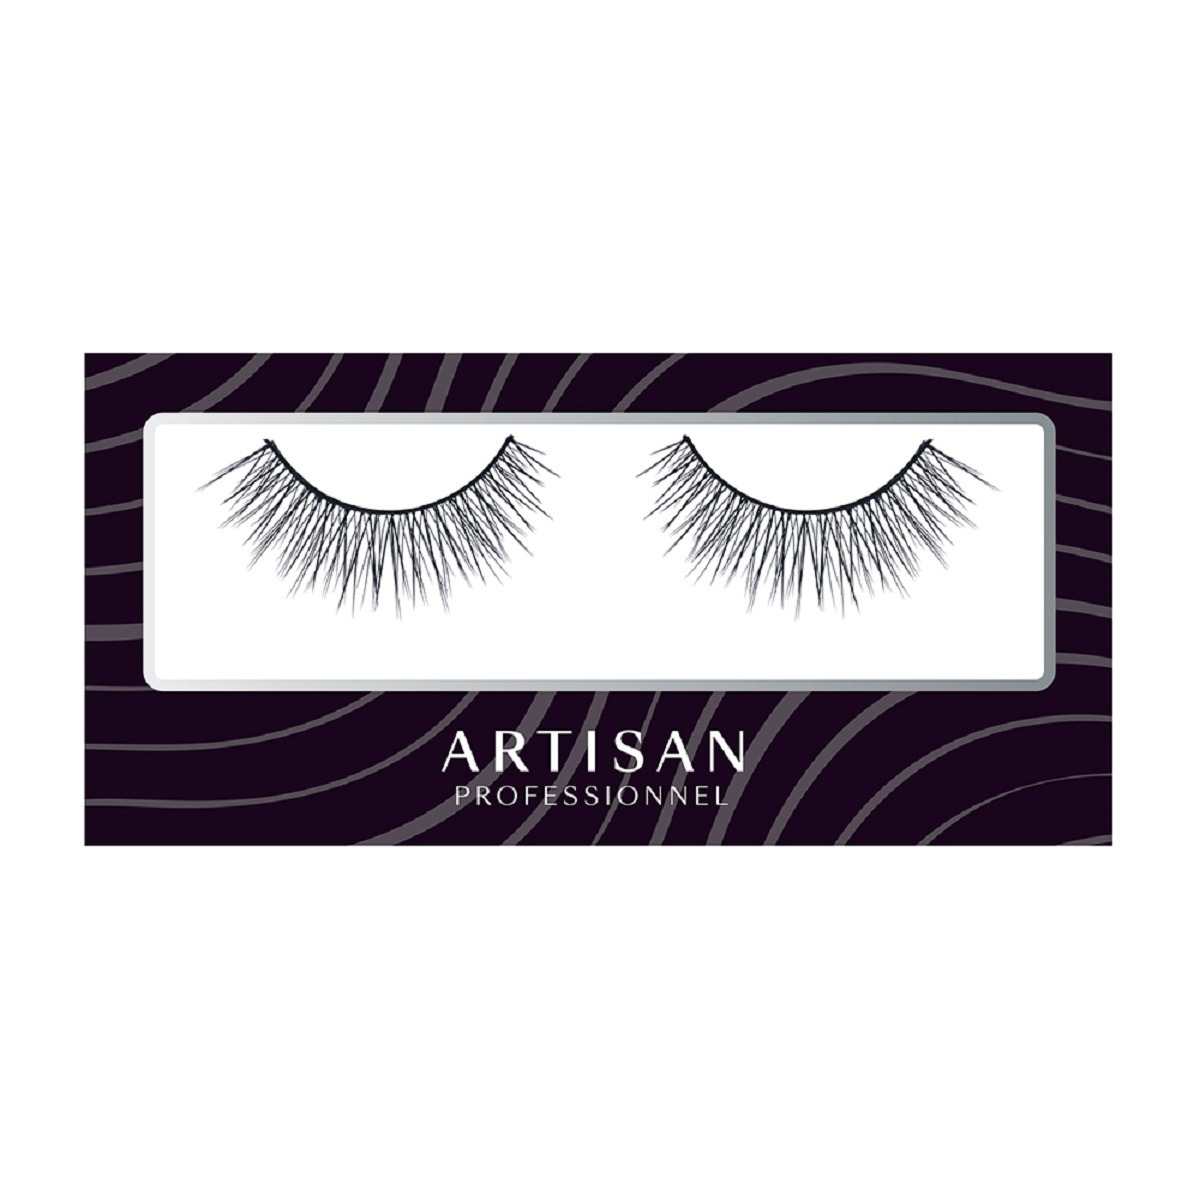 Artisan Professionnel Voile New Exclusive Collection